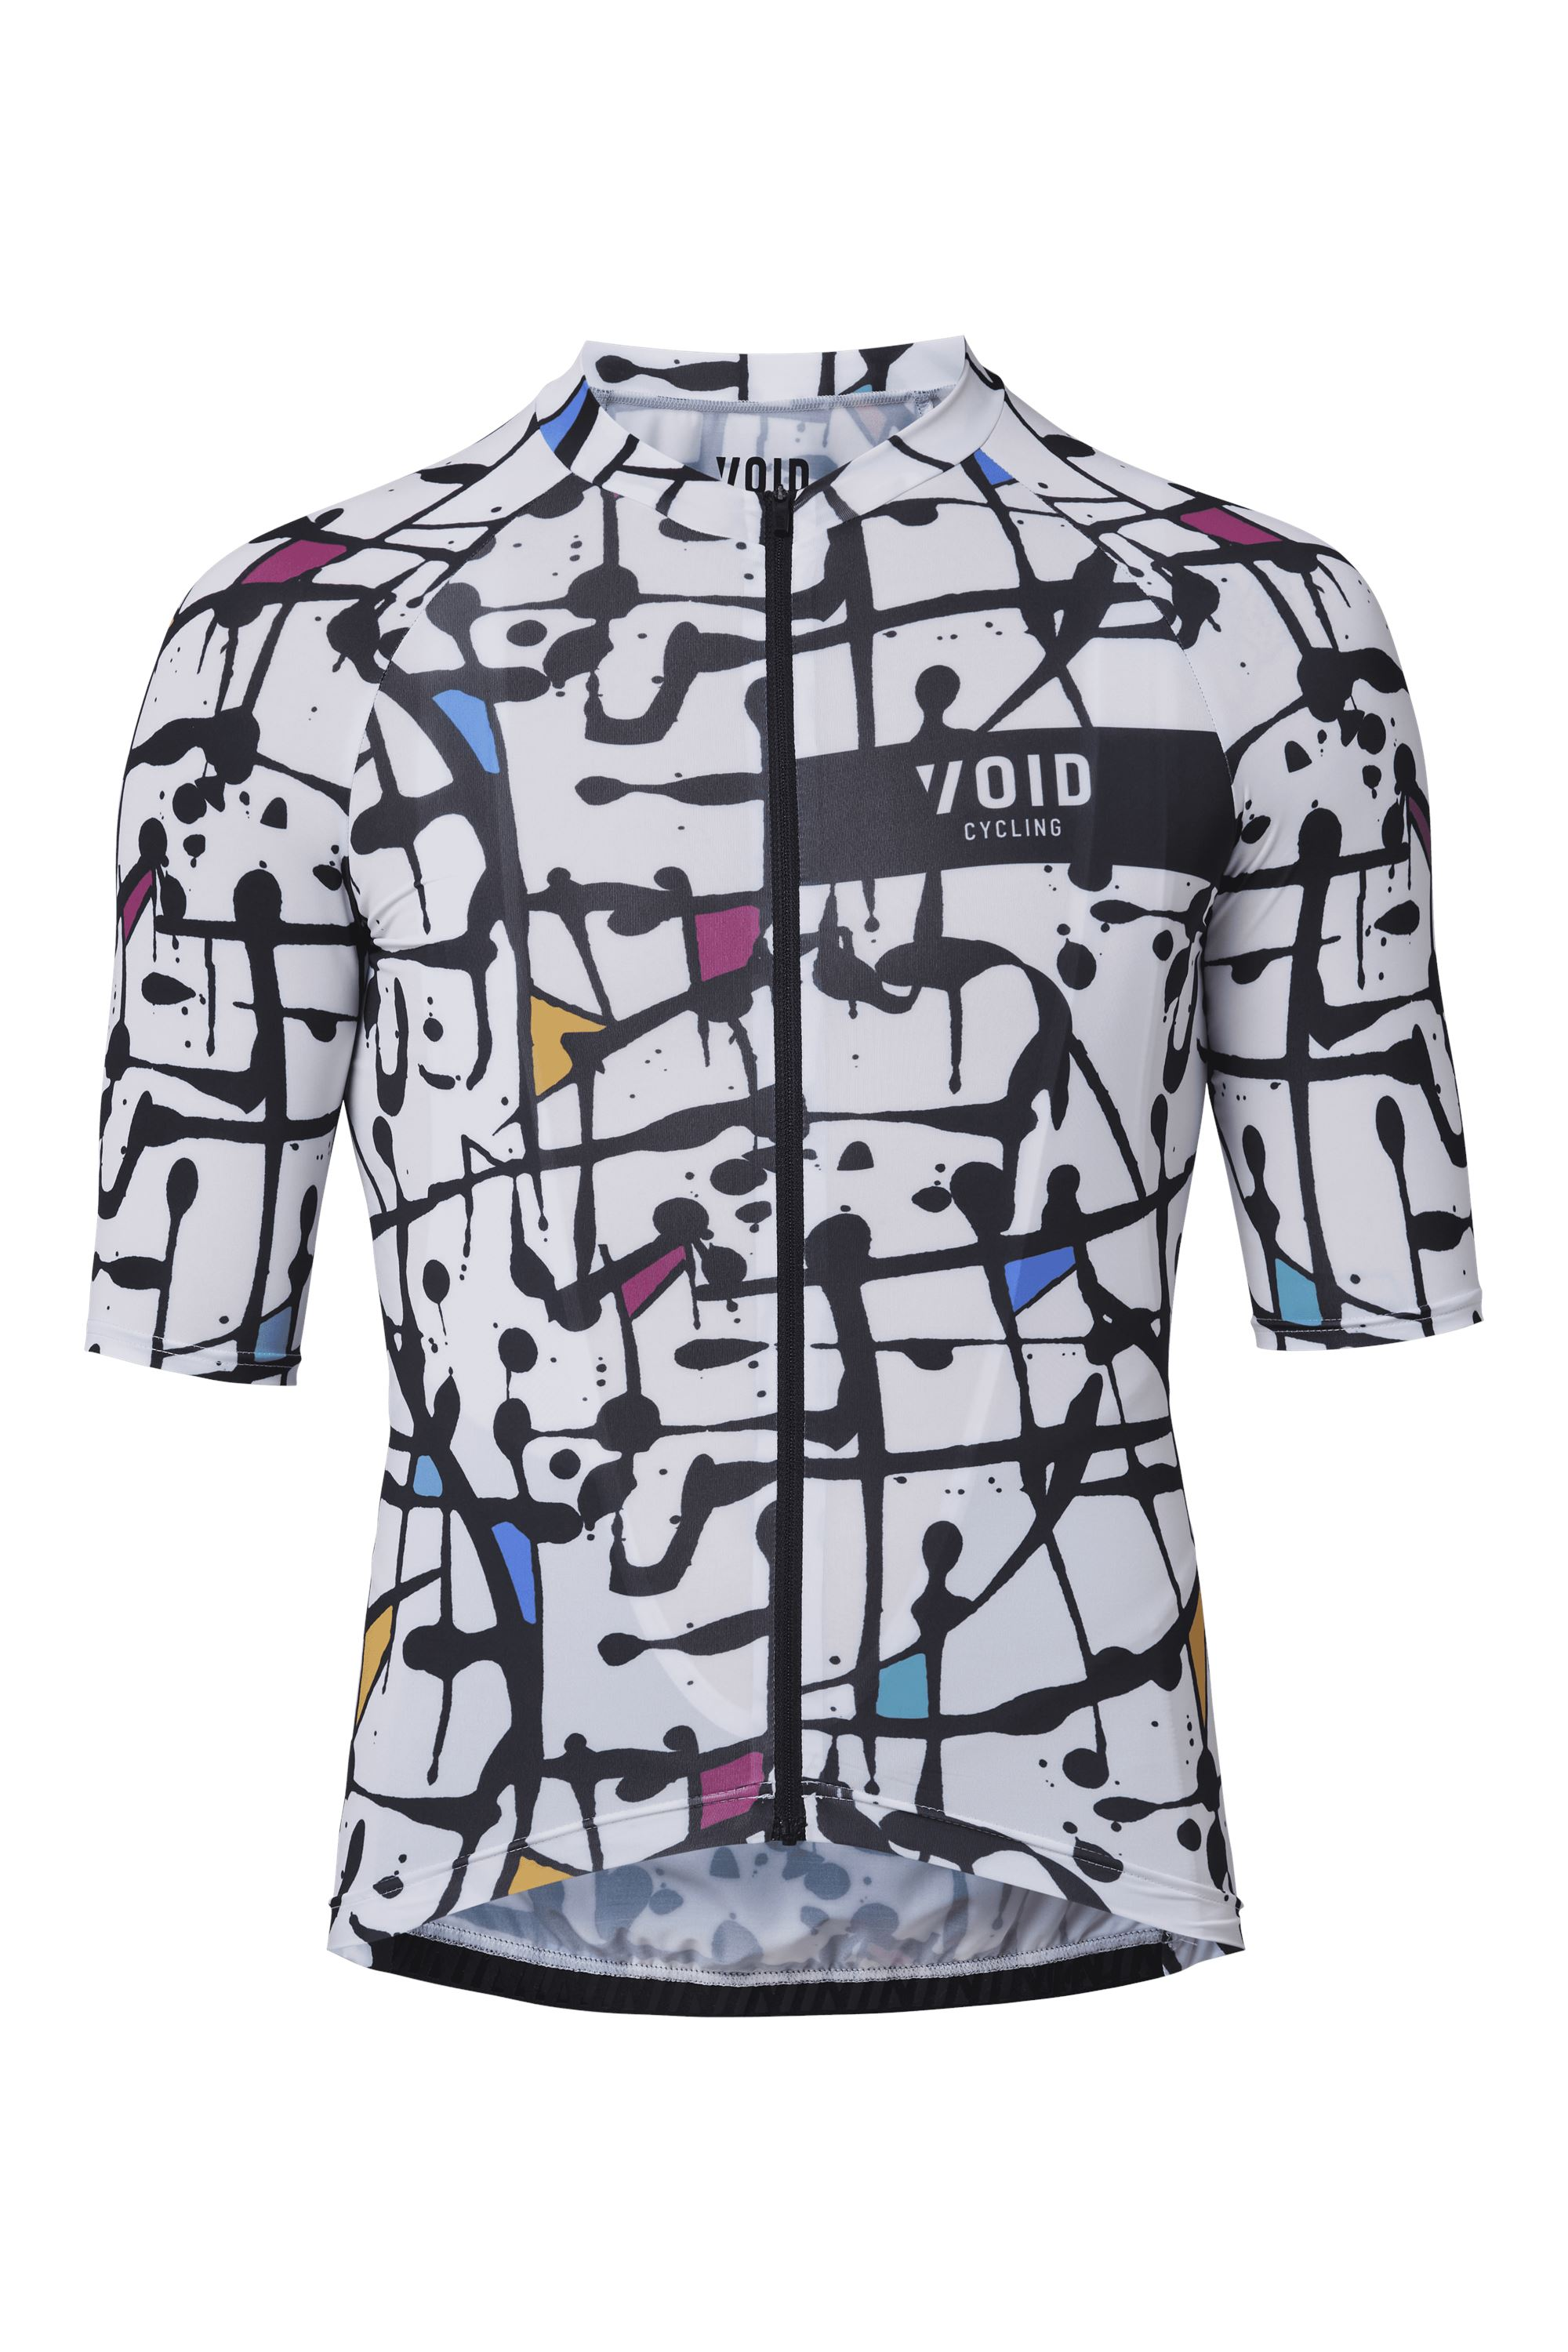 VOID ABSTRACT JERSEY WHITE